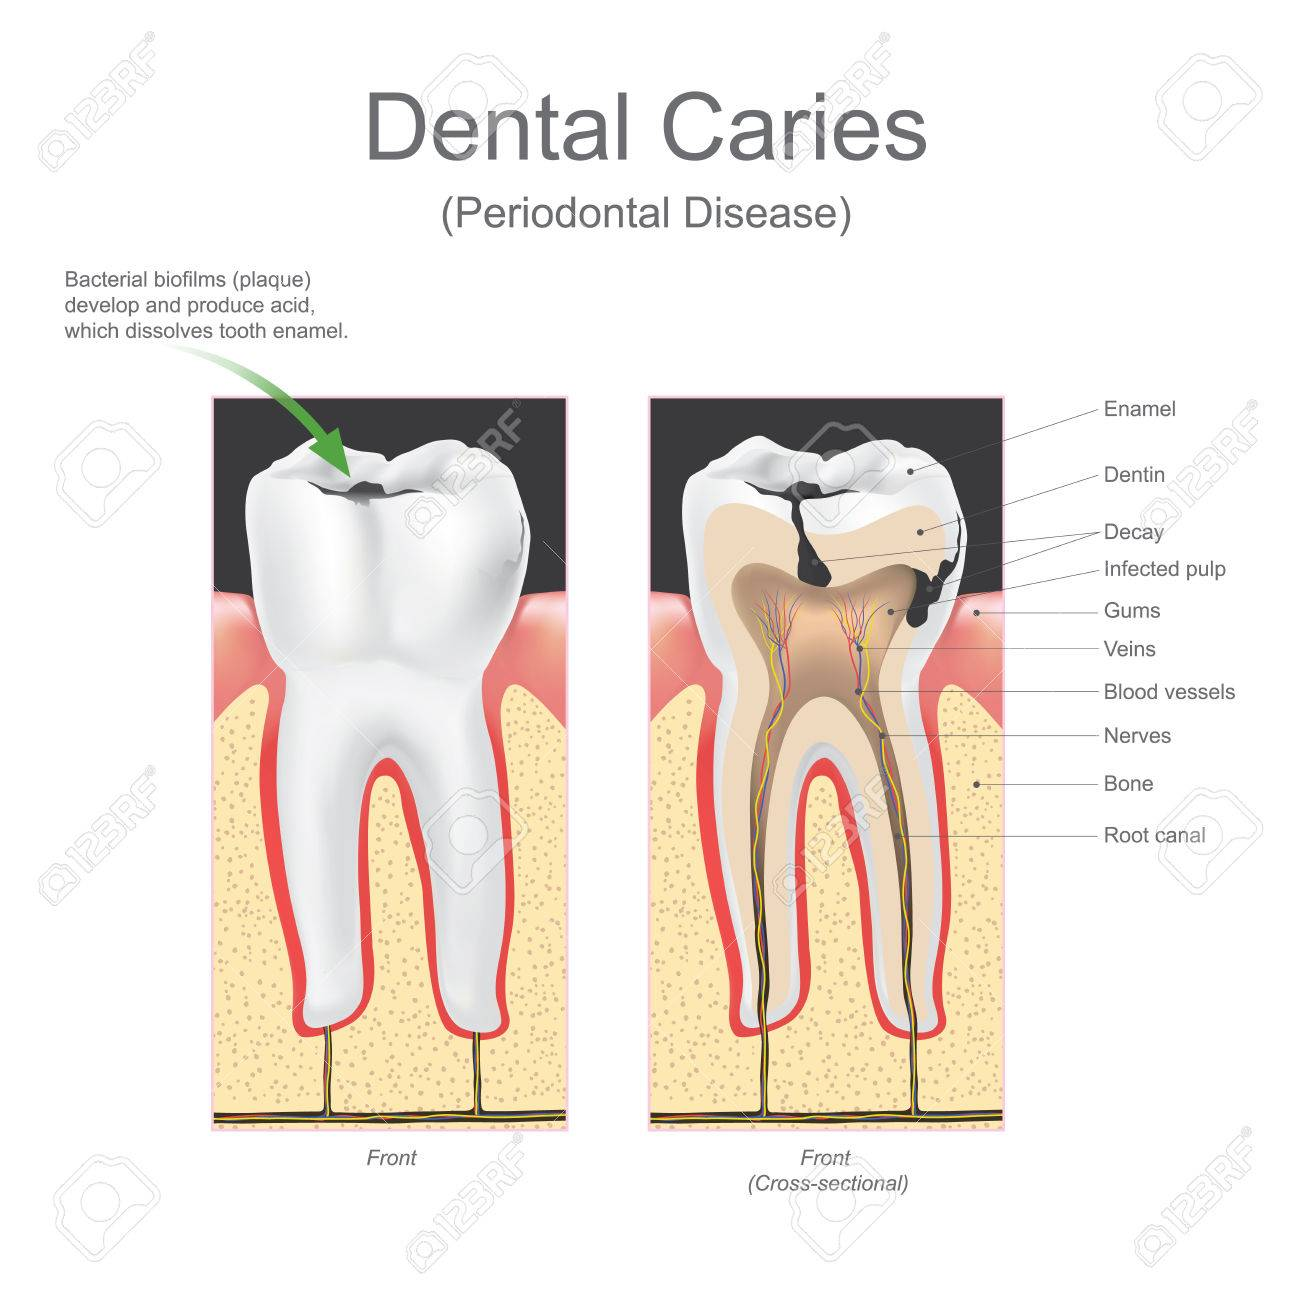 hight resolution of it is caused by specific types of bacteria they produce acid that destroys the tooth s enamel and the layer under it